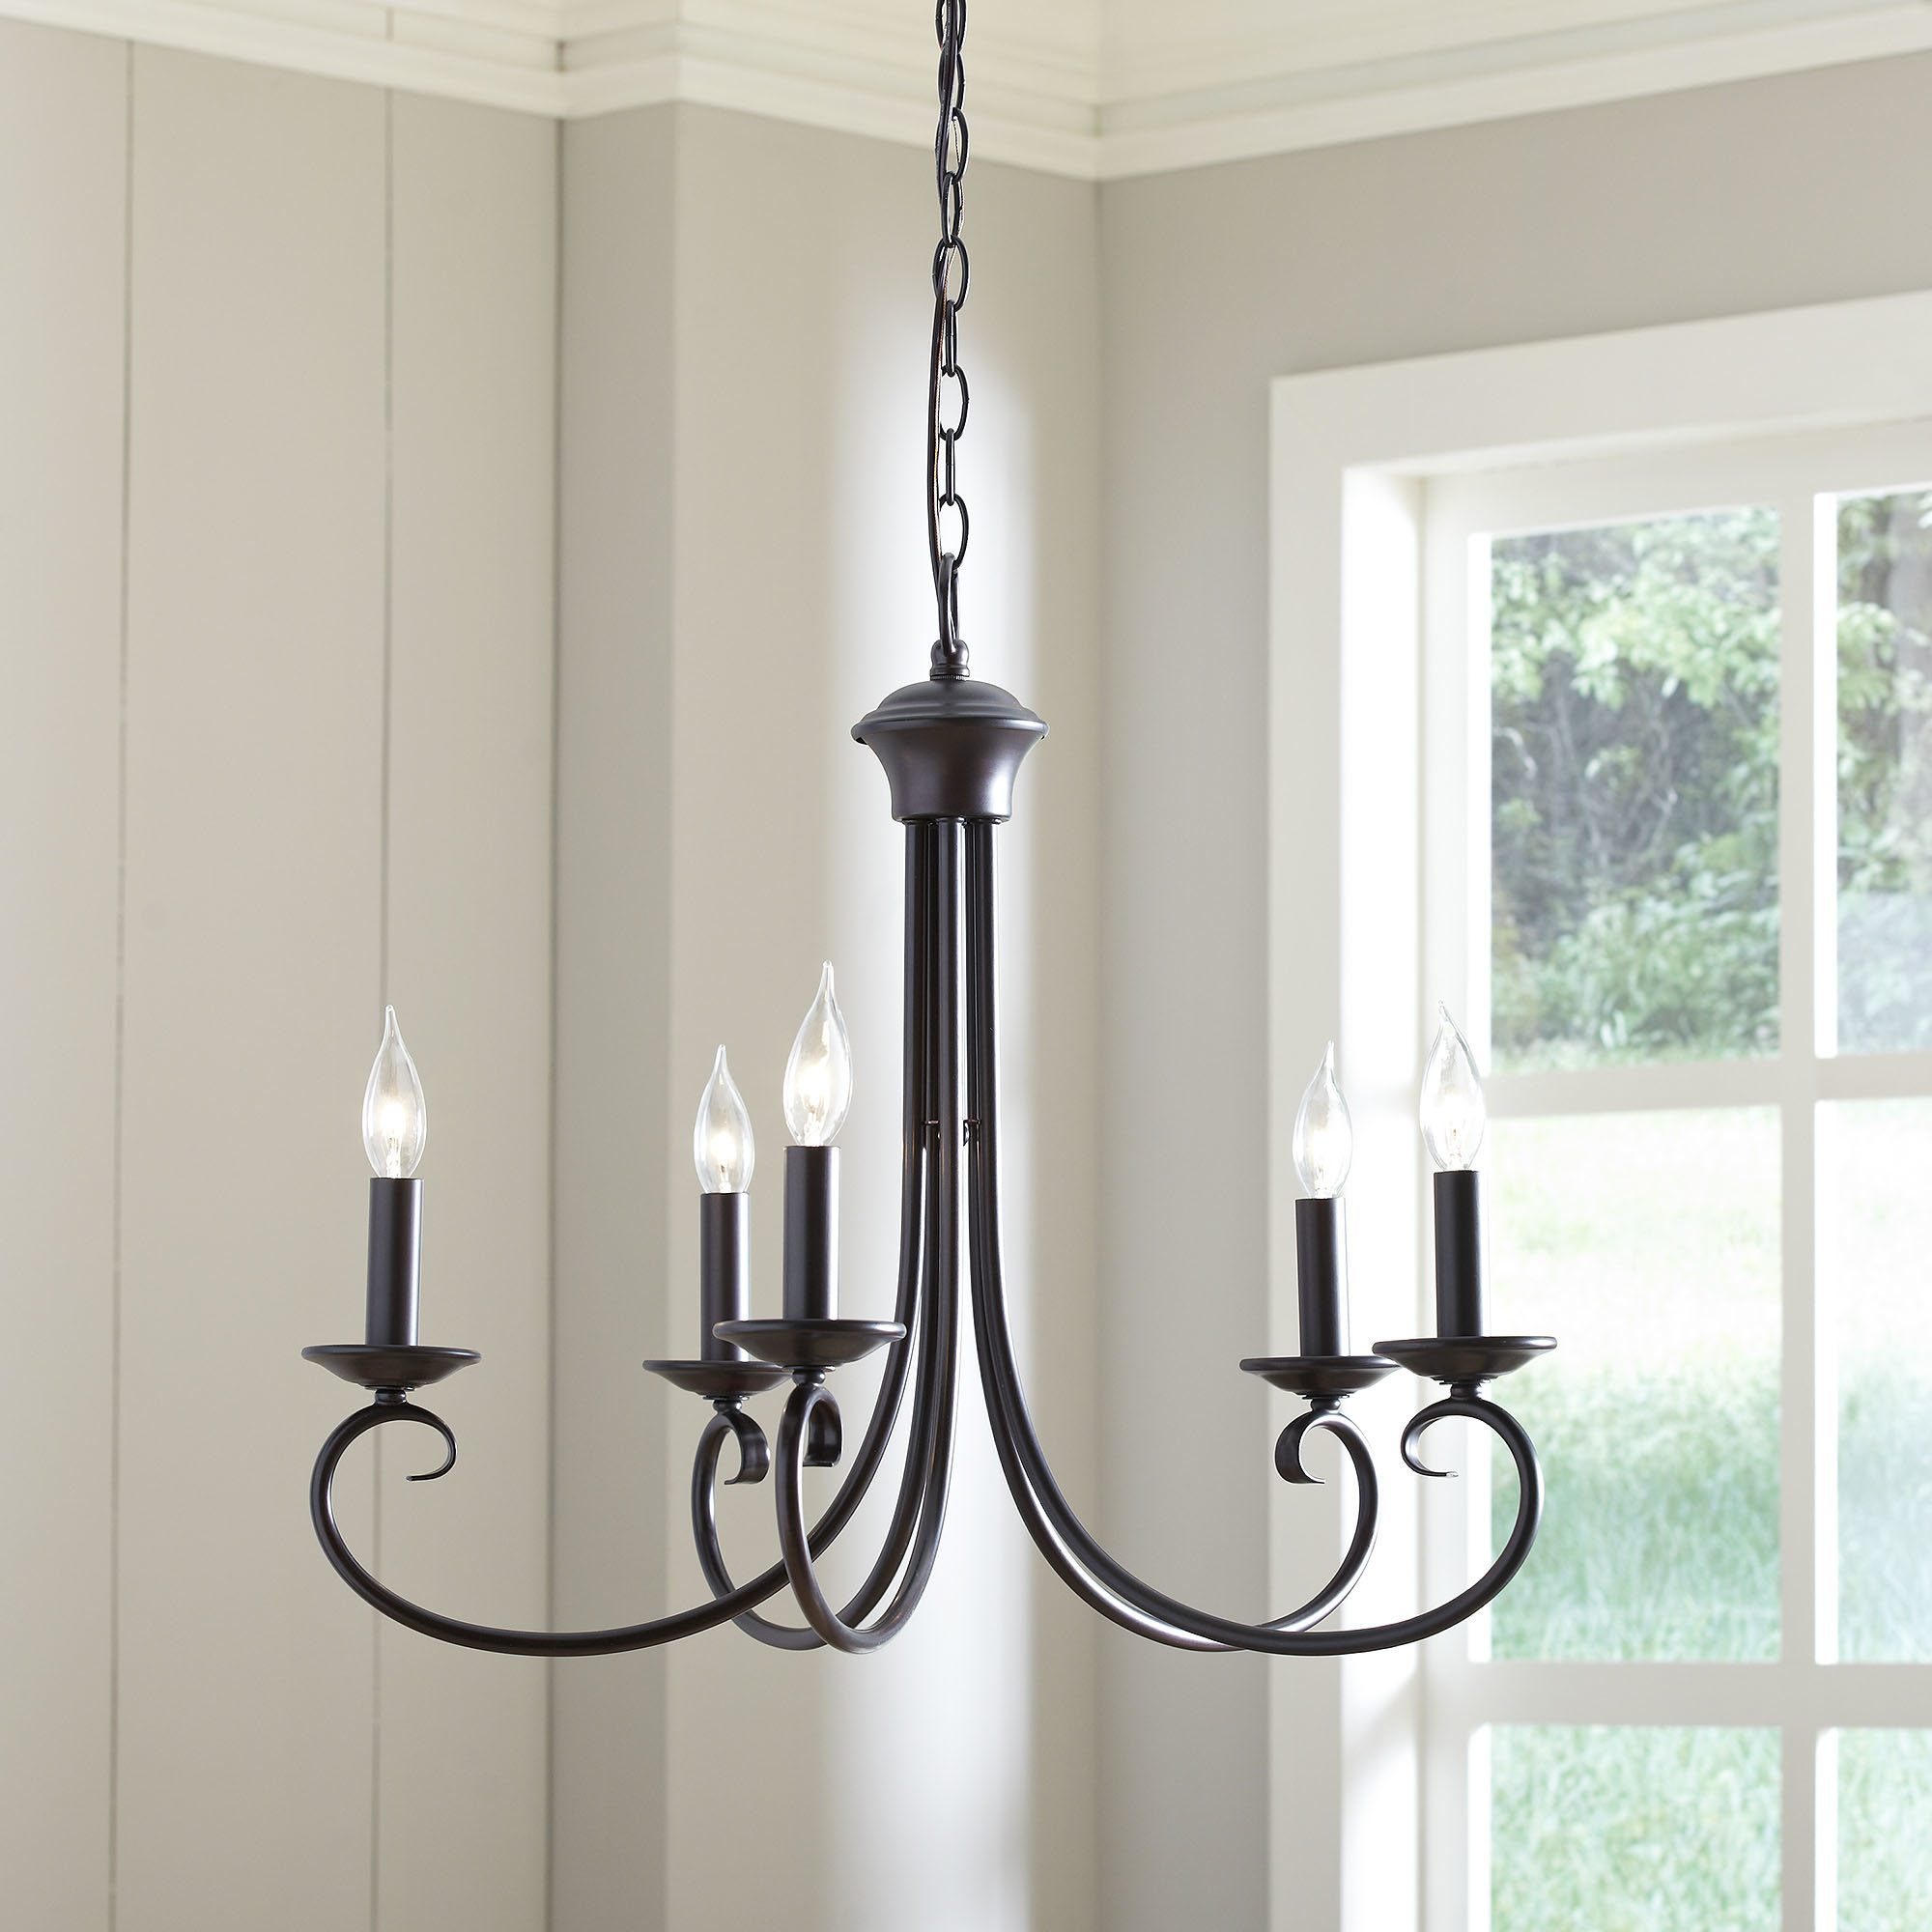 Edgell 5 Light Candle Style Chandelier With Regard To Most Current Florentina 5 Light Candle Style Chandeliers (Gallery 11 of 25)